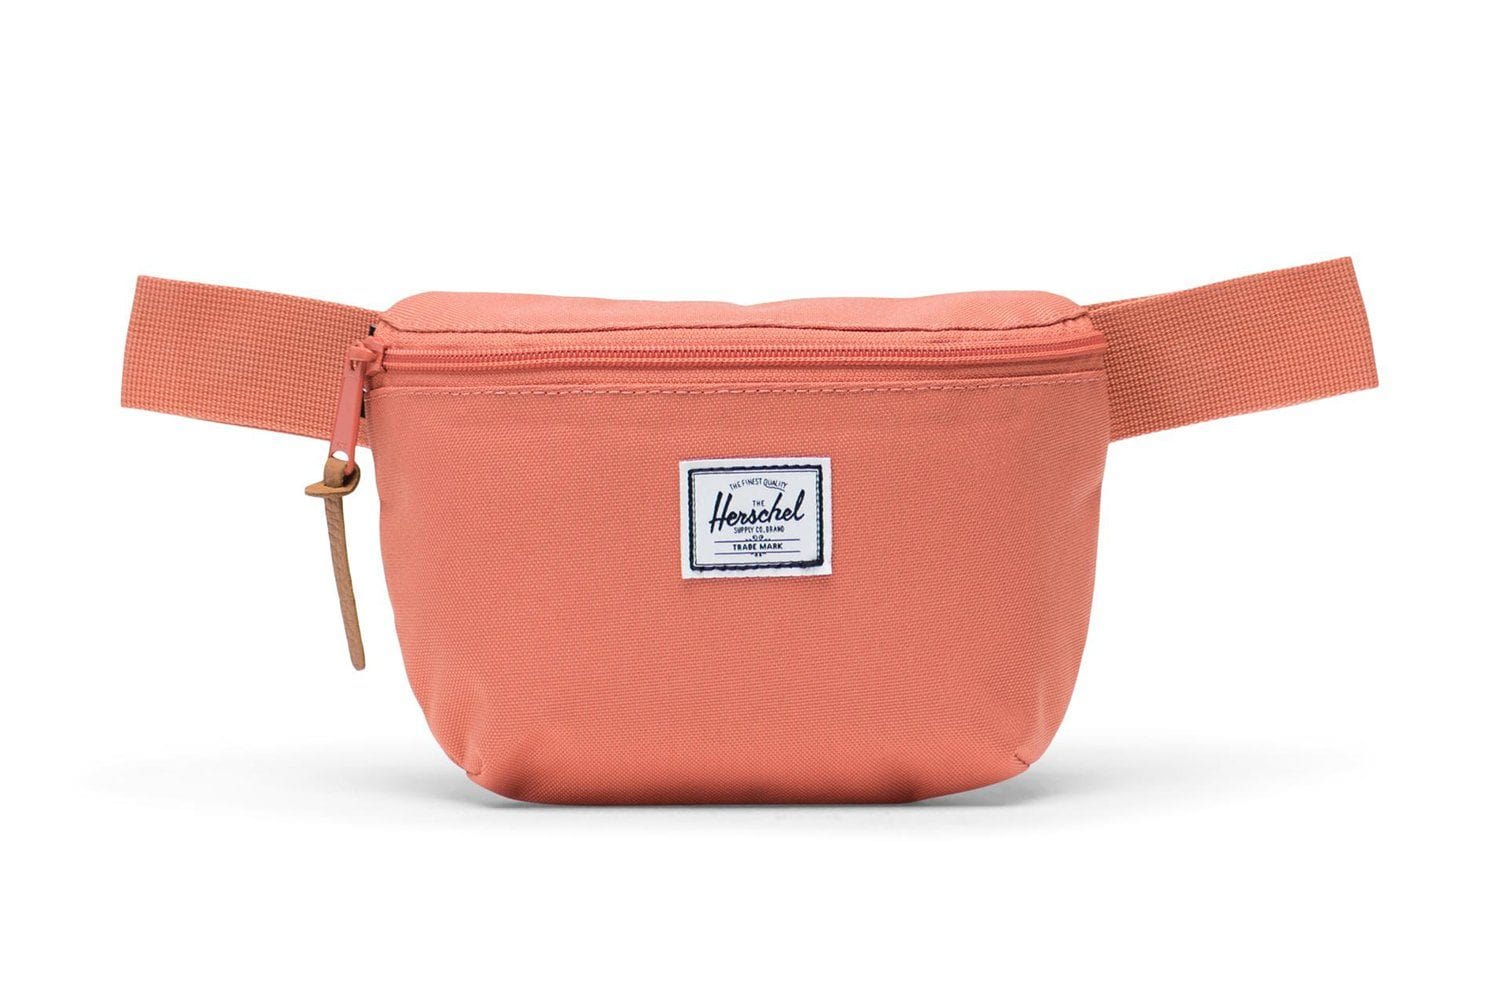 FOURTEEN 600D POLY - 10514-02522 ACCESSORIES HERSCHEL APRICOT OS